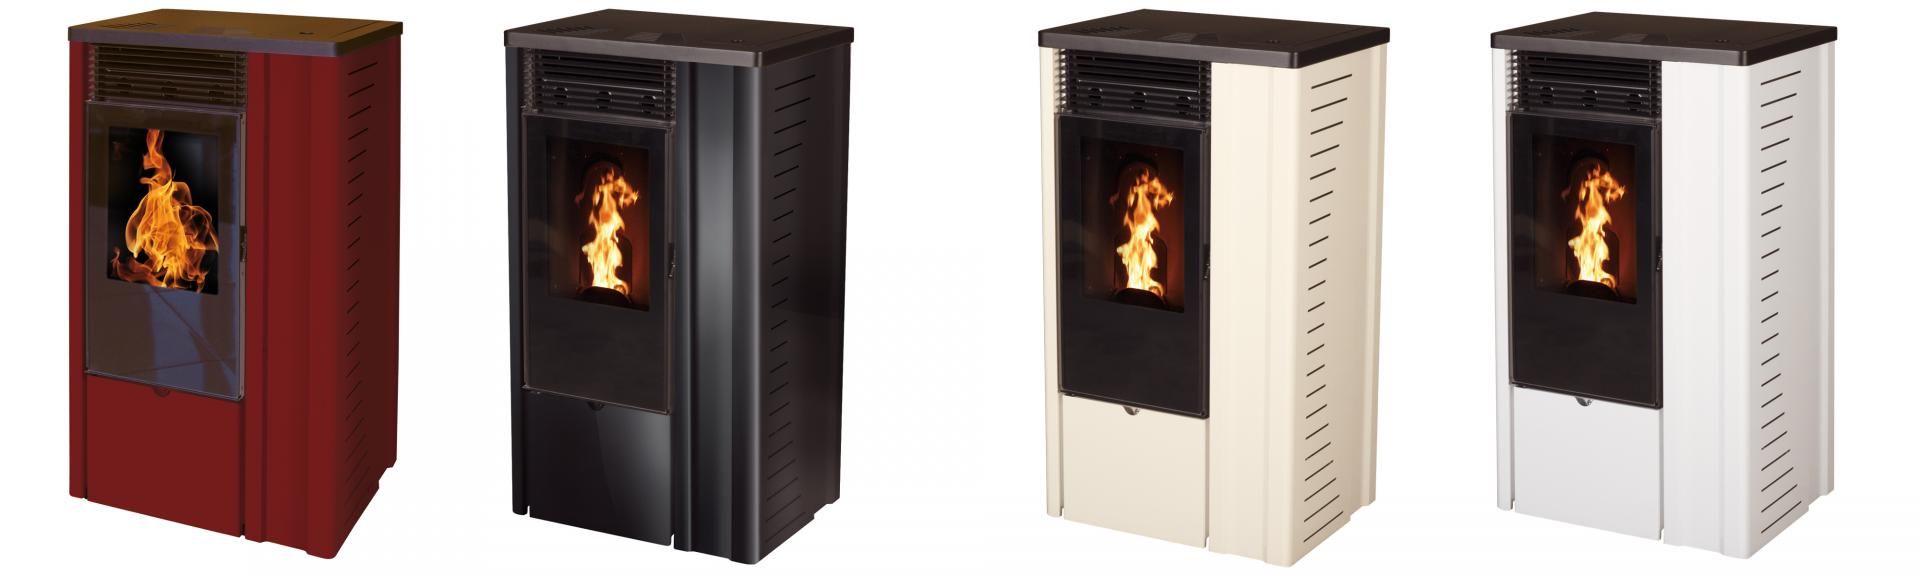 Couleur mode le stove industry pgvc